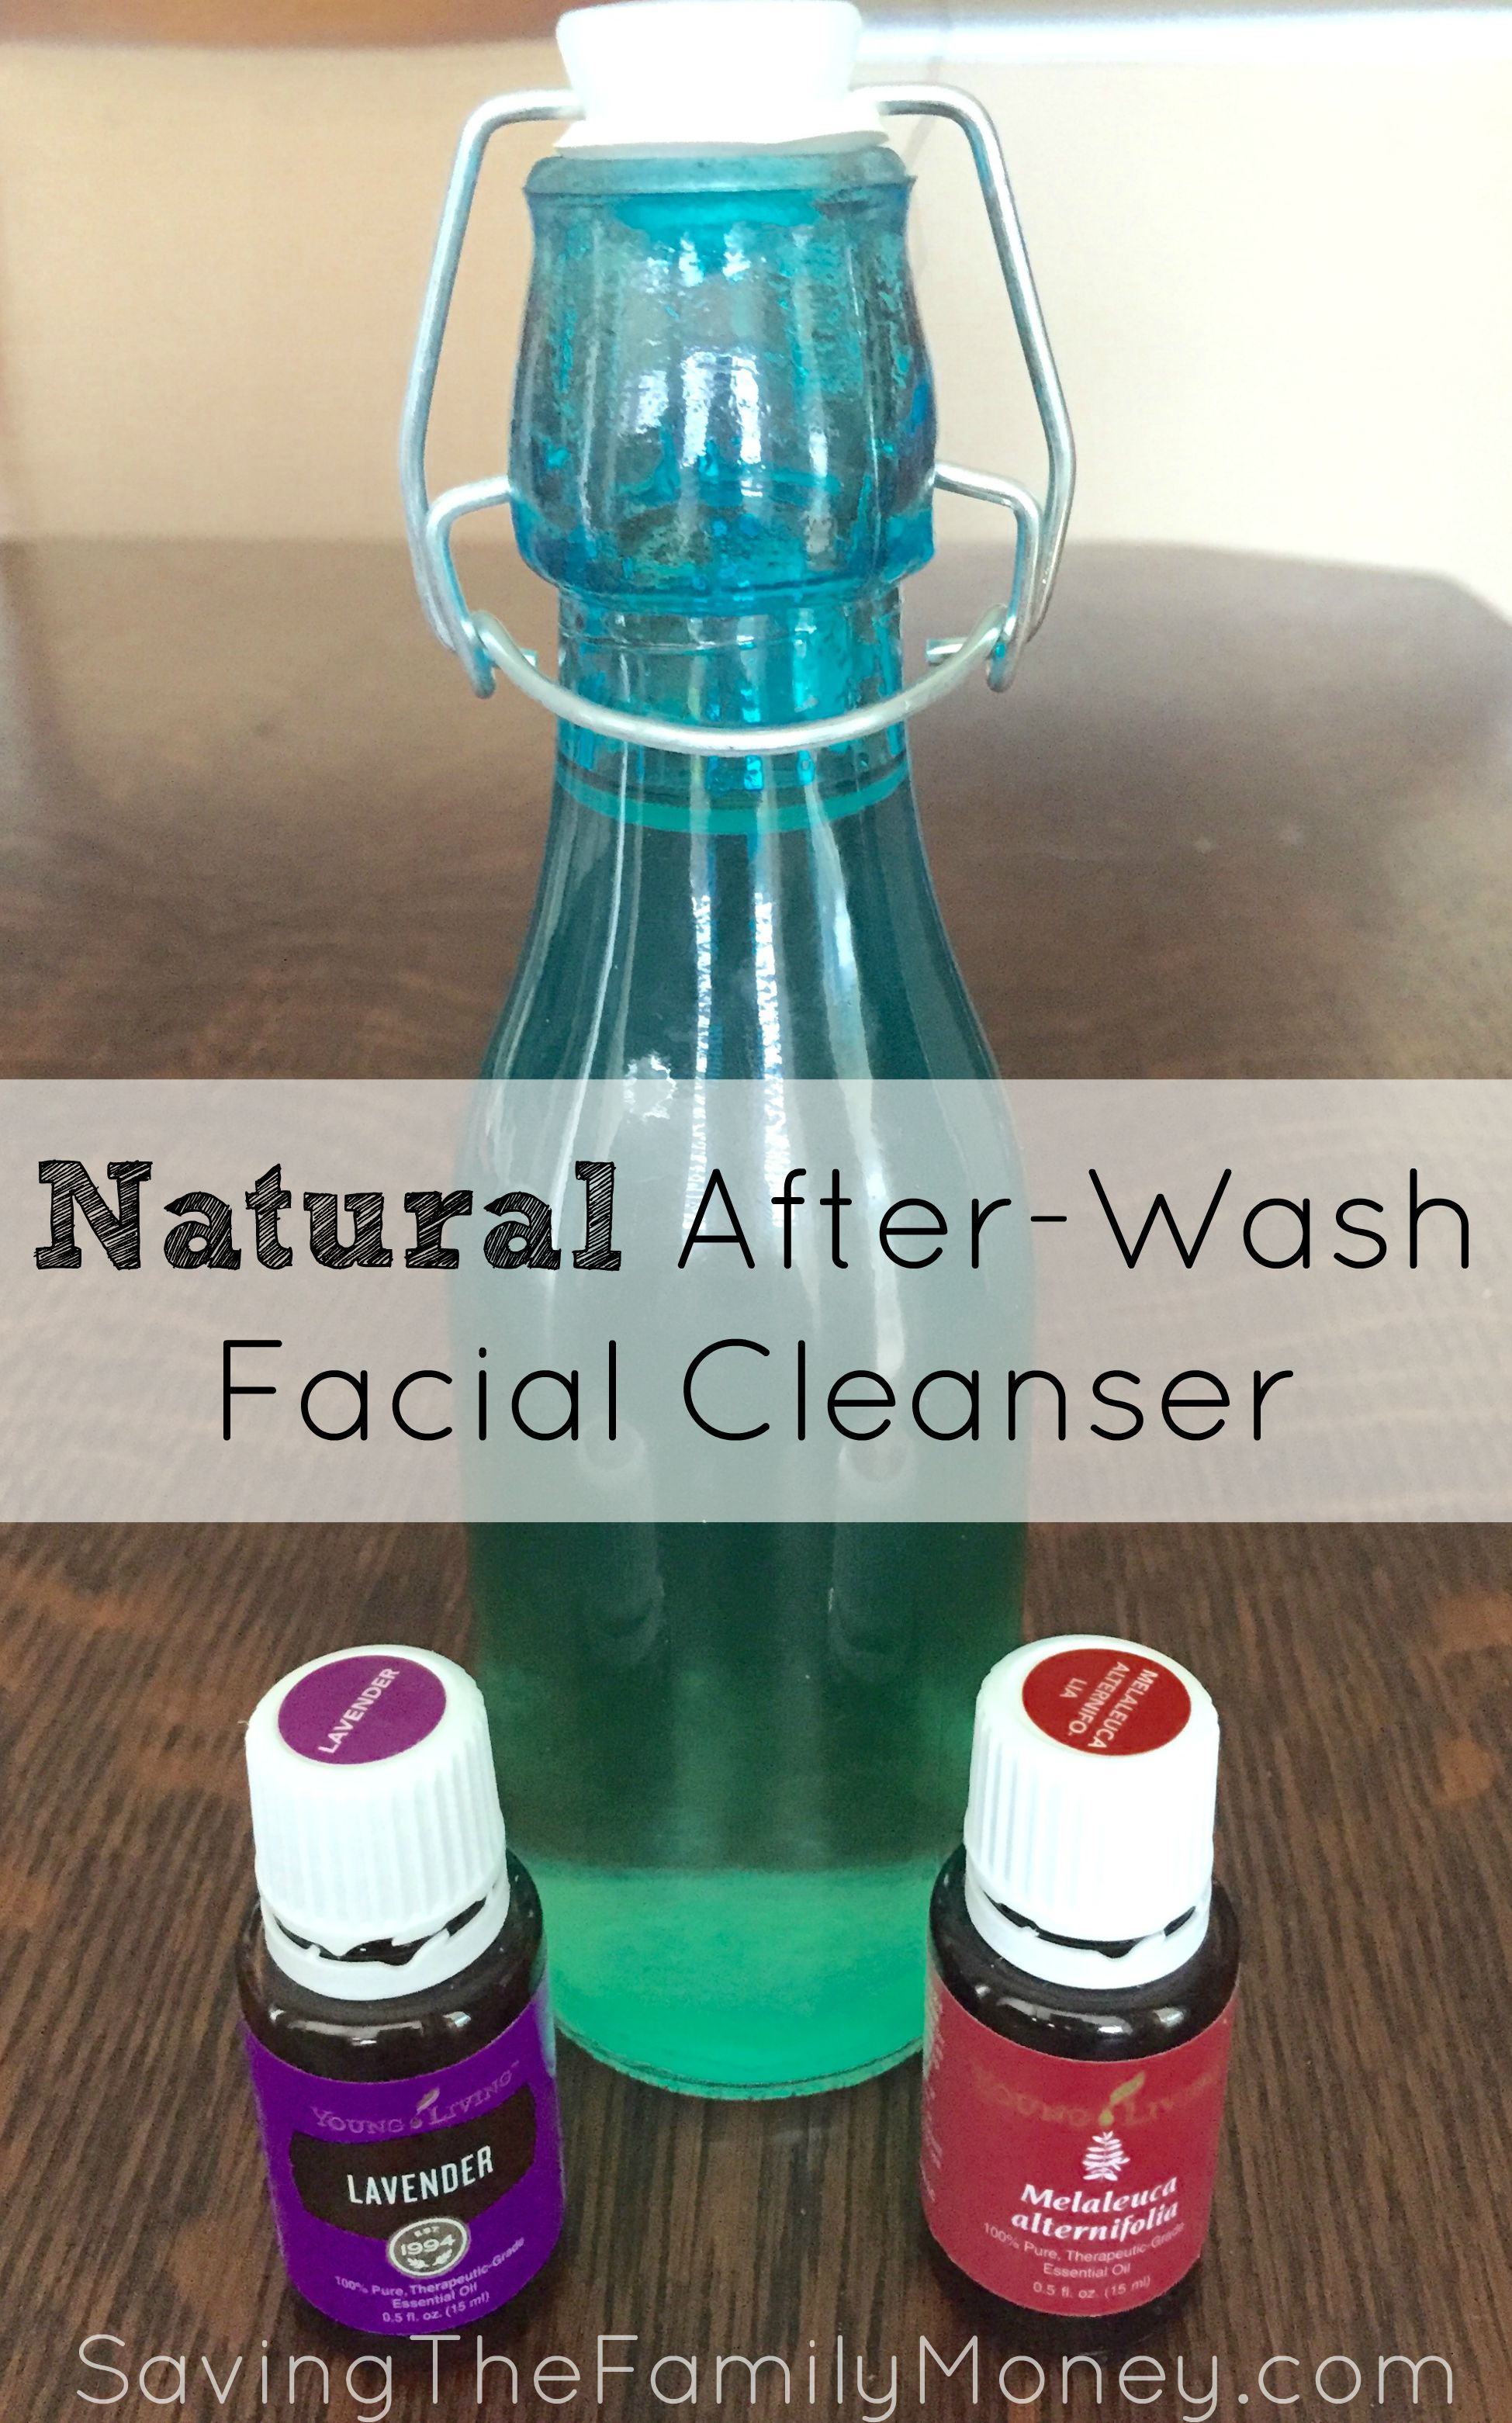 Natural After-Wash Facial Cleanser